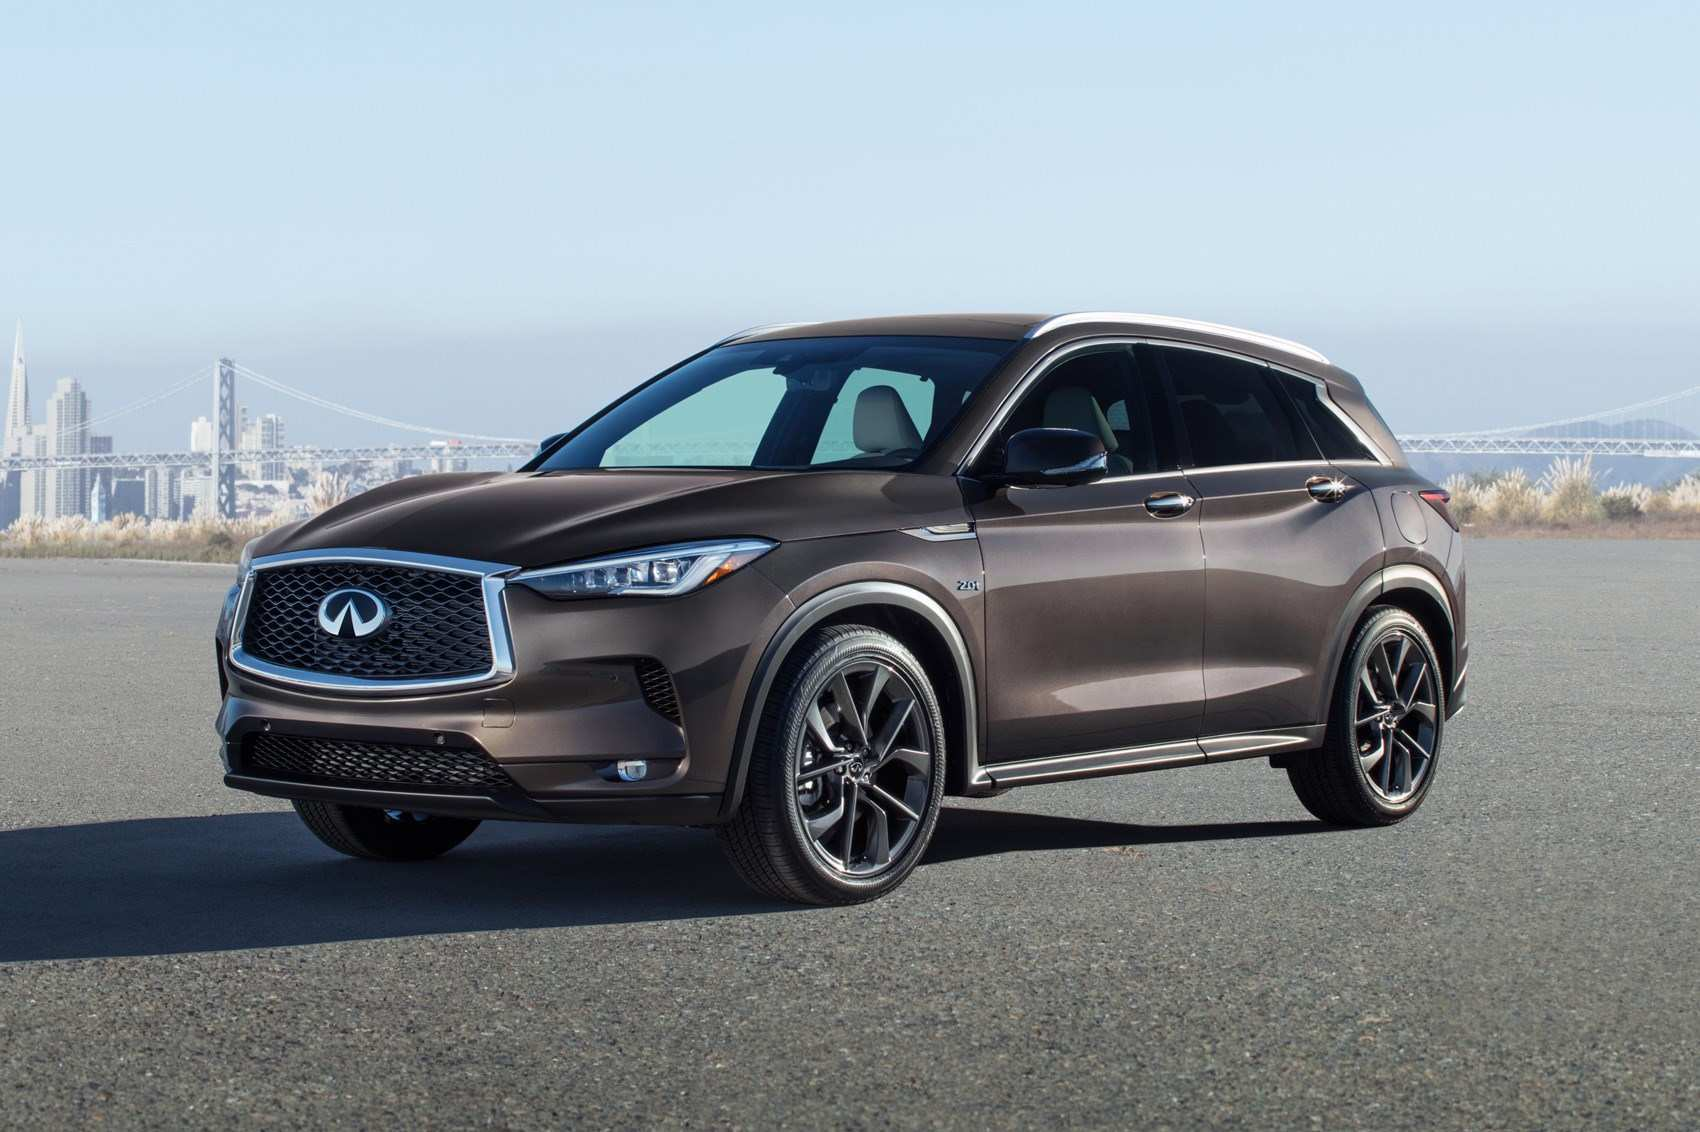 27 Gallery of Infiniti Cars 2020 Price and Review for Infiniti Cars 2020